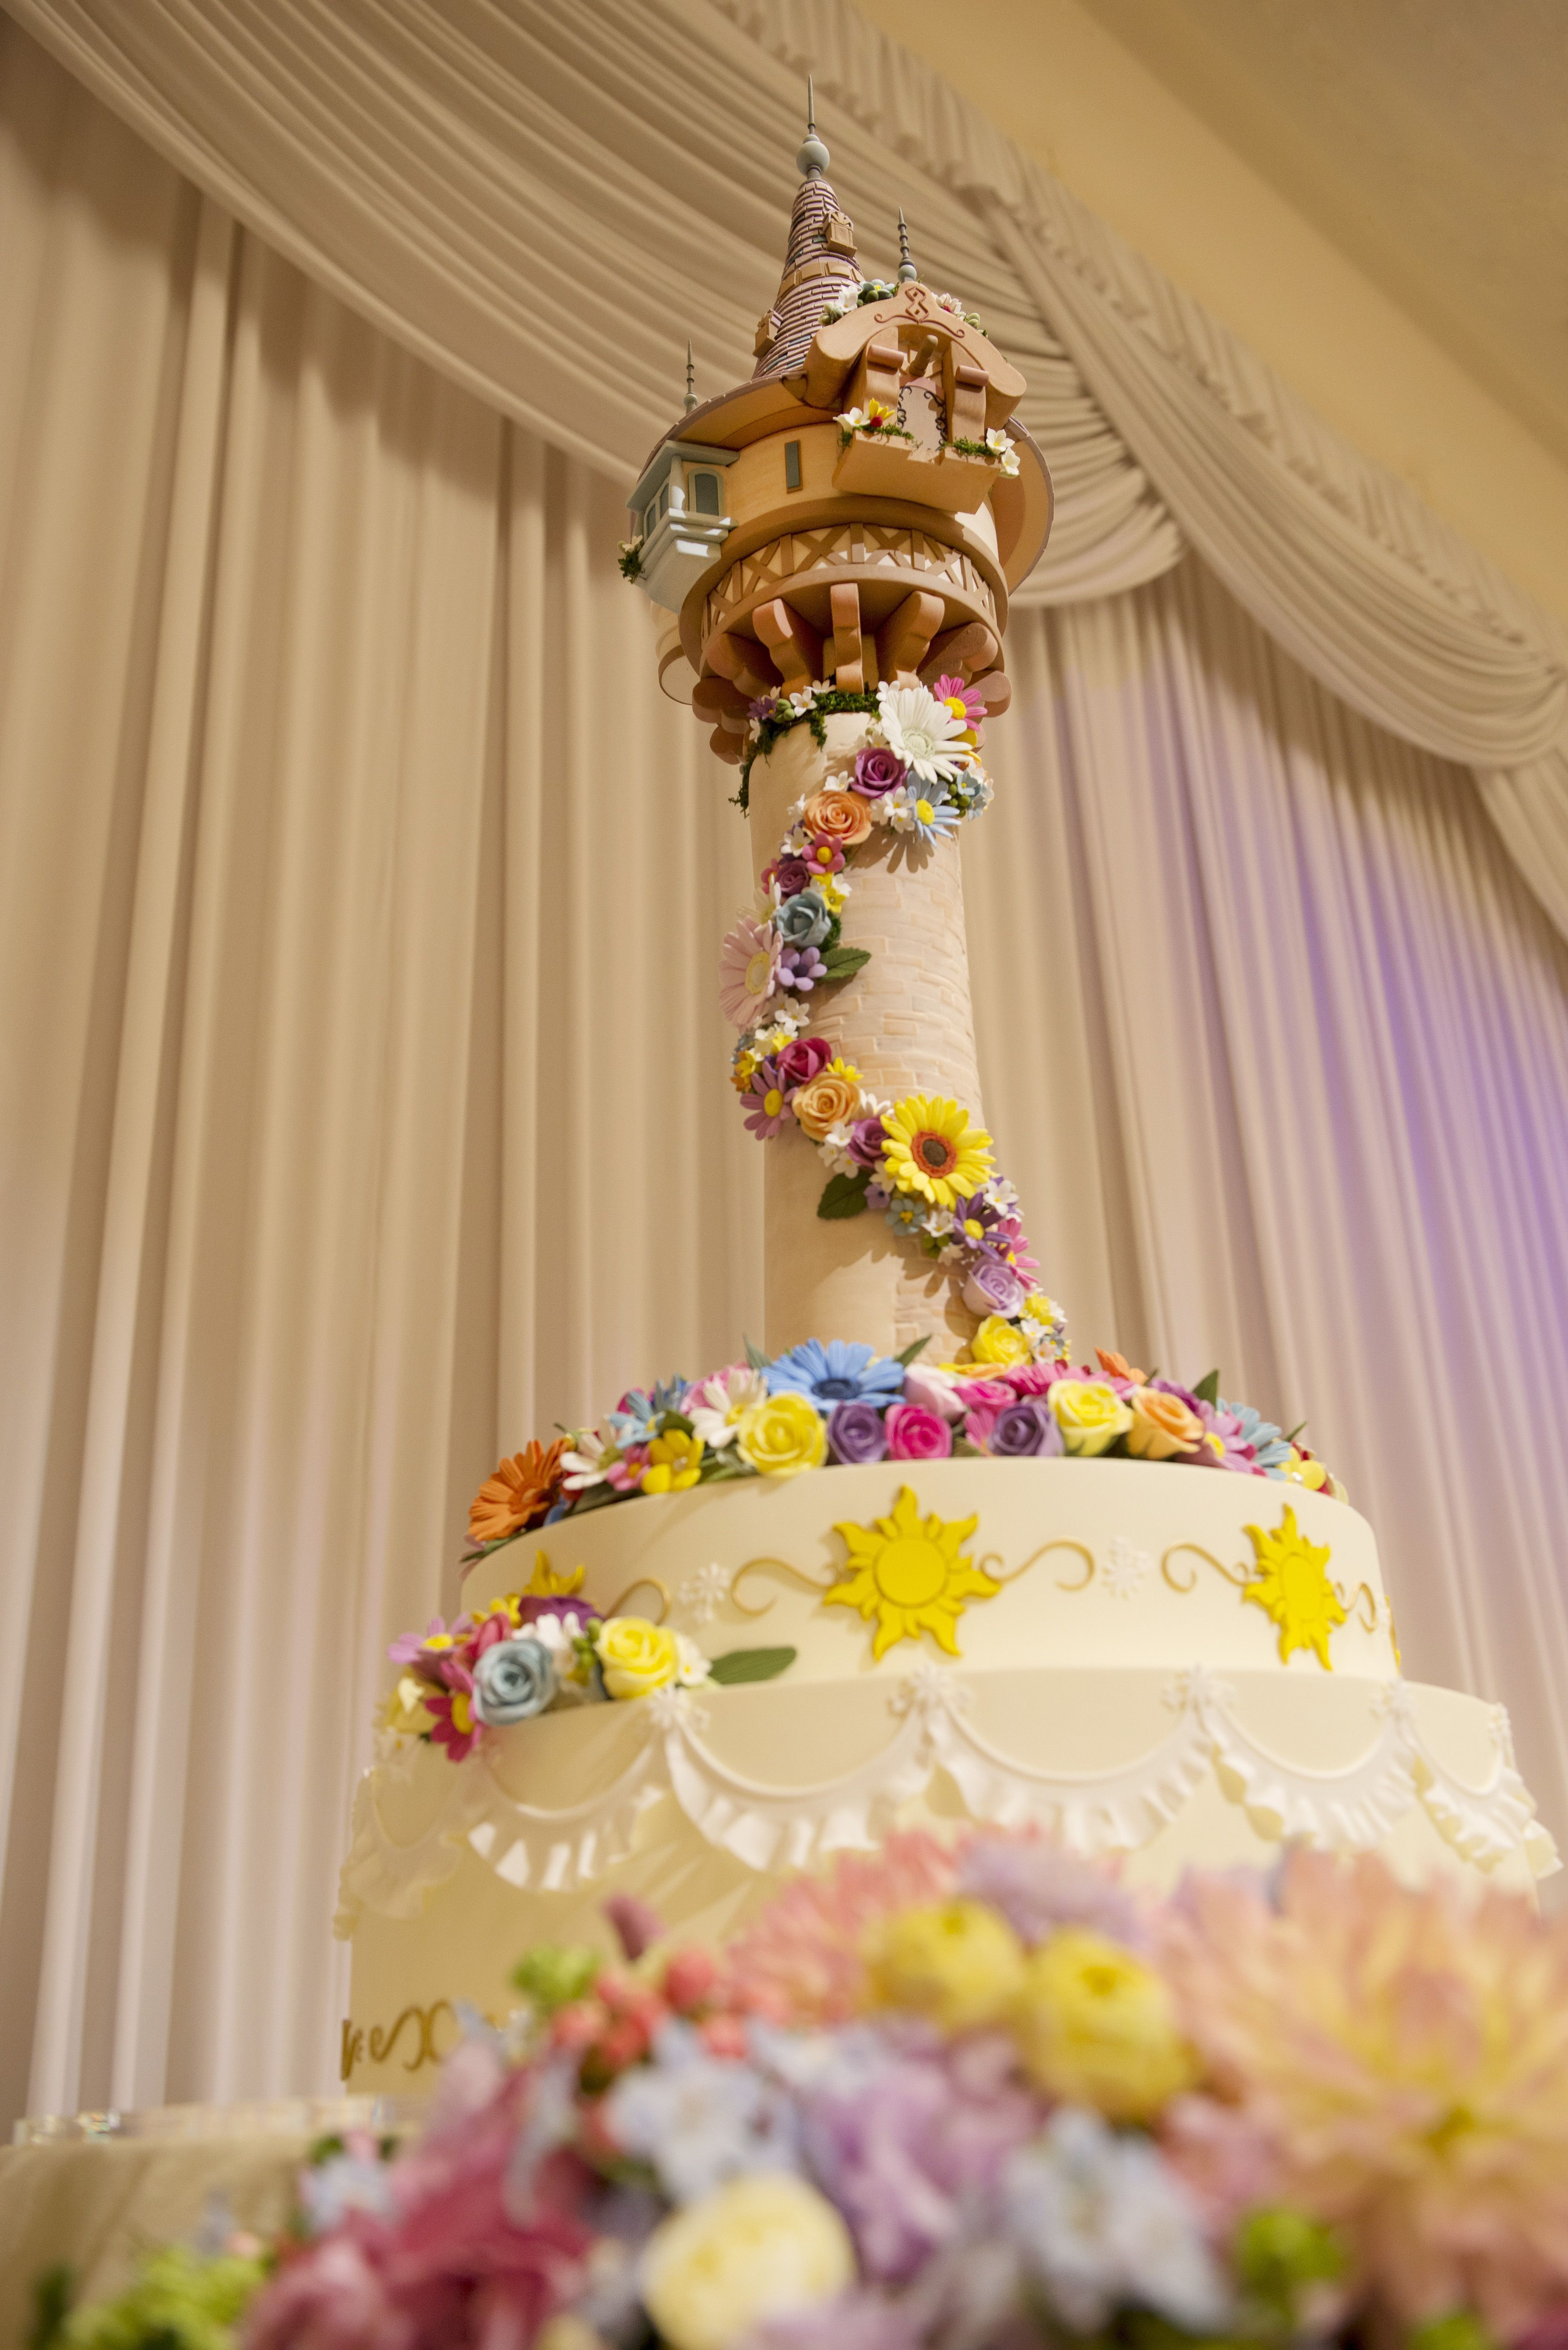 Frozen cake design images  Tangled and Frozen weddings launch at Tokyo Disney Resort and they